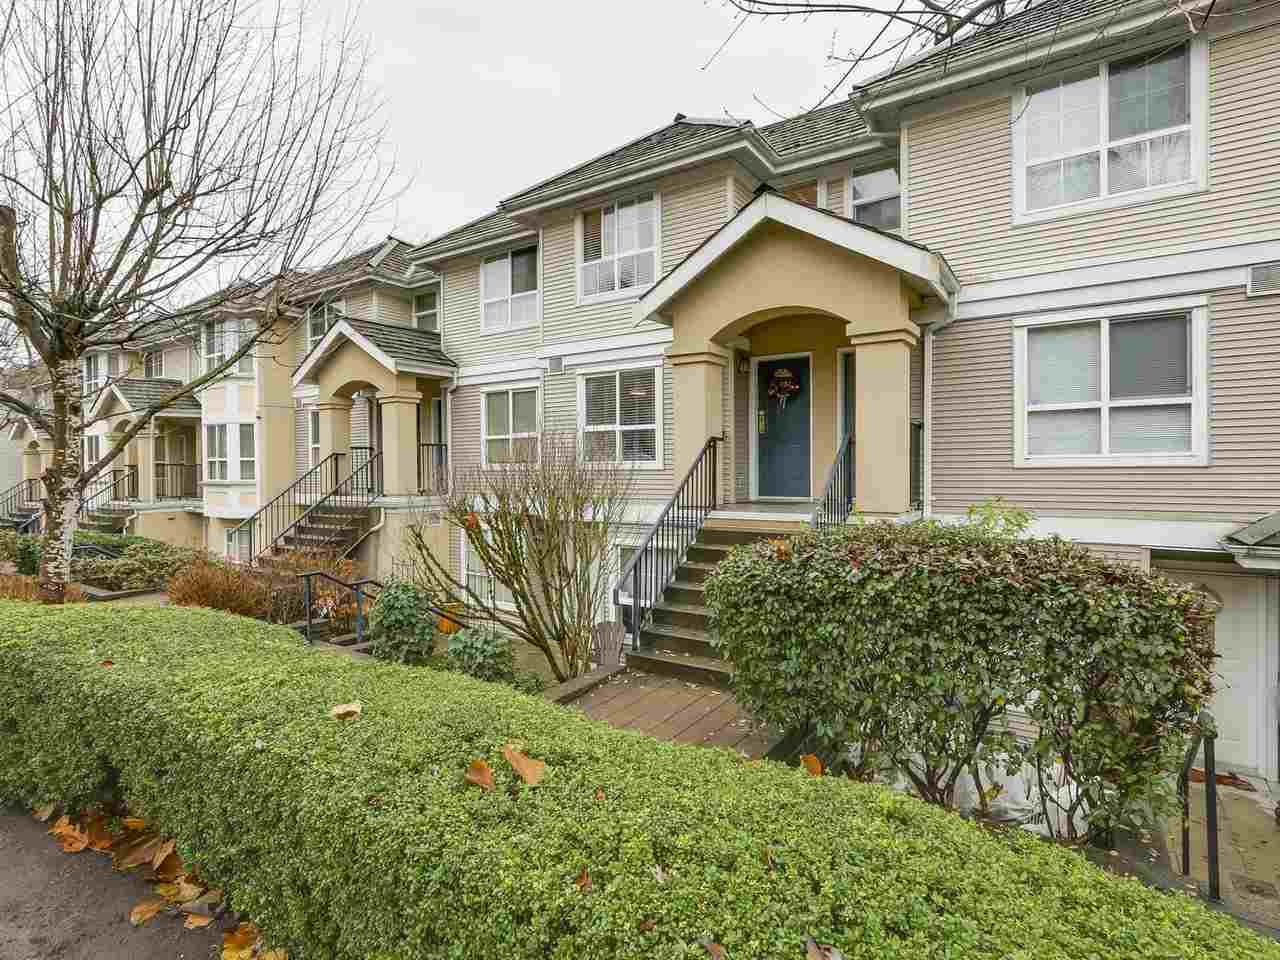 Main Photo: 232 1408 CARTIER Avenue in Coquitlam: Maillardville Townhouse for sale : MLS® # R2225473